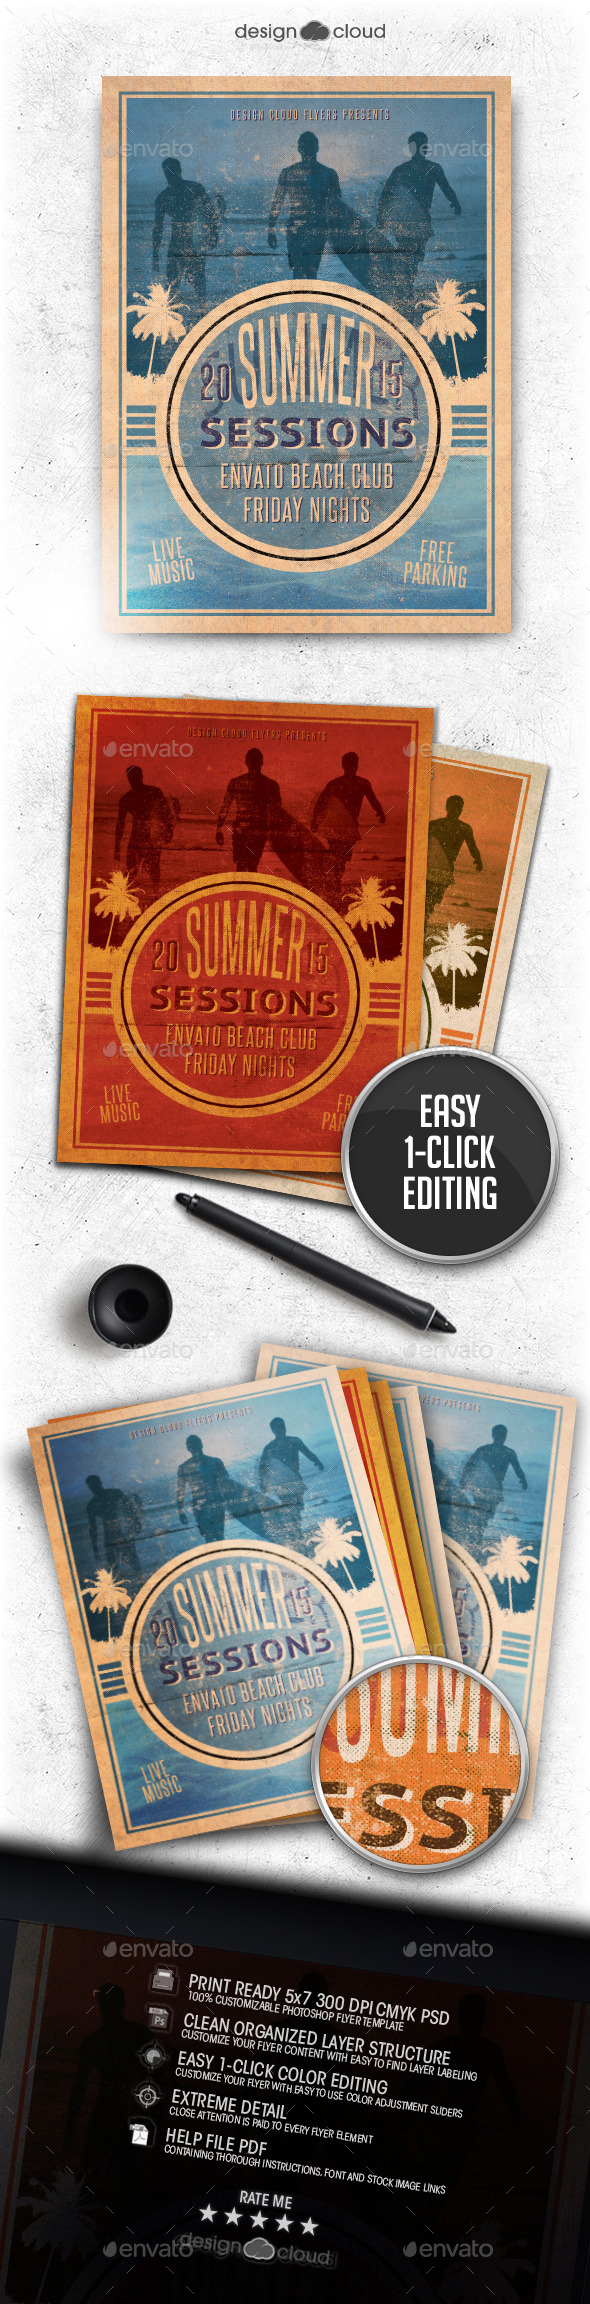 Retro Summer Sessions Event Flyer Template Vol. 1 - Events Flyers